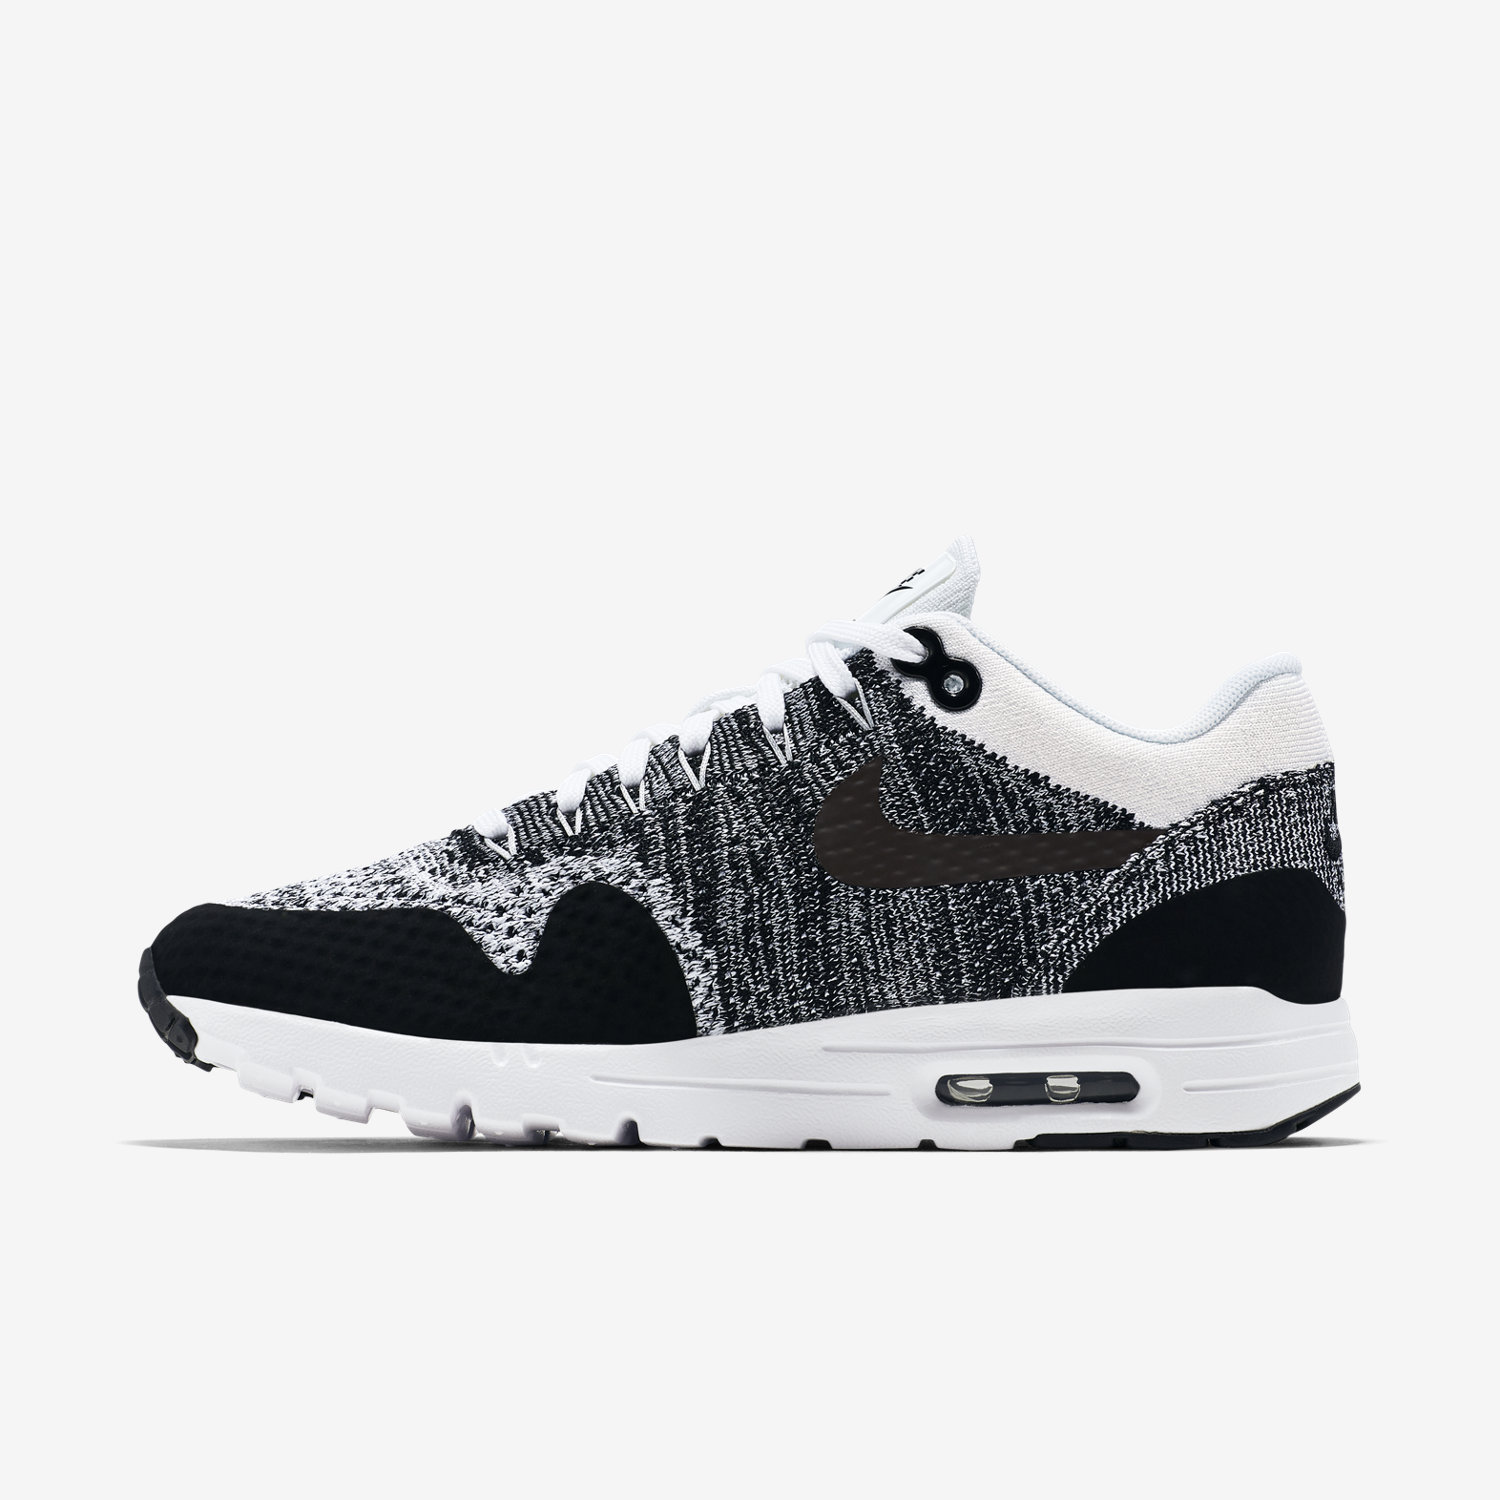 ec4050046b3a6 ... where can i buy adidas zx flux marinen blå and hvit jeep wrangler  clearance nike air